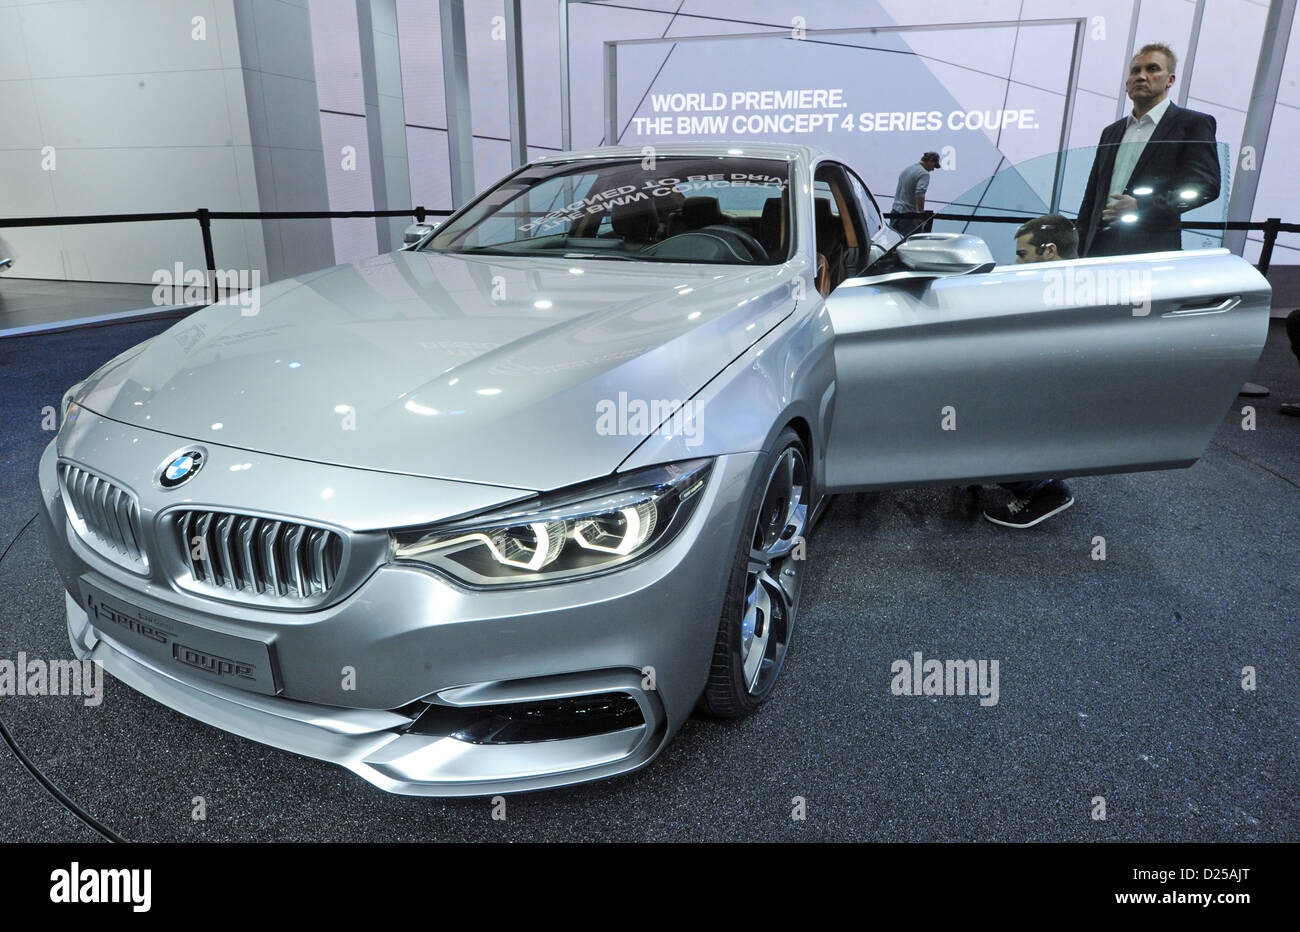 BMW 4er Concept Coupe is unveiled on the first press day of the North American International Auto Show (NAIAS) in - Stock Image